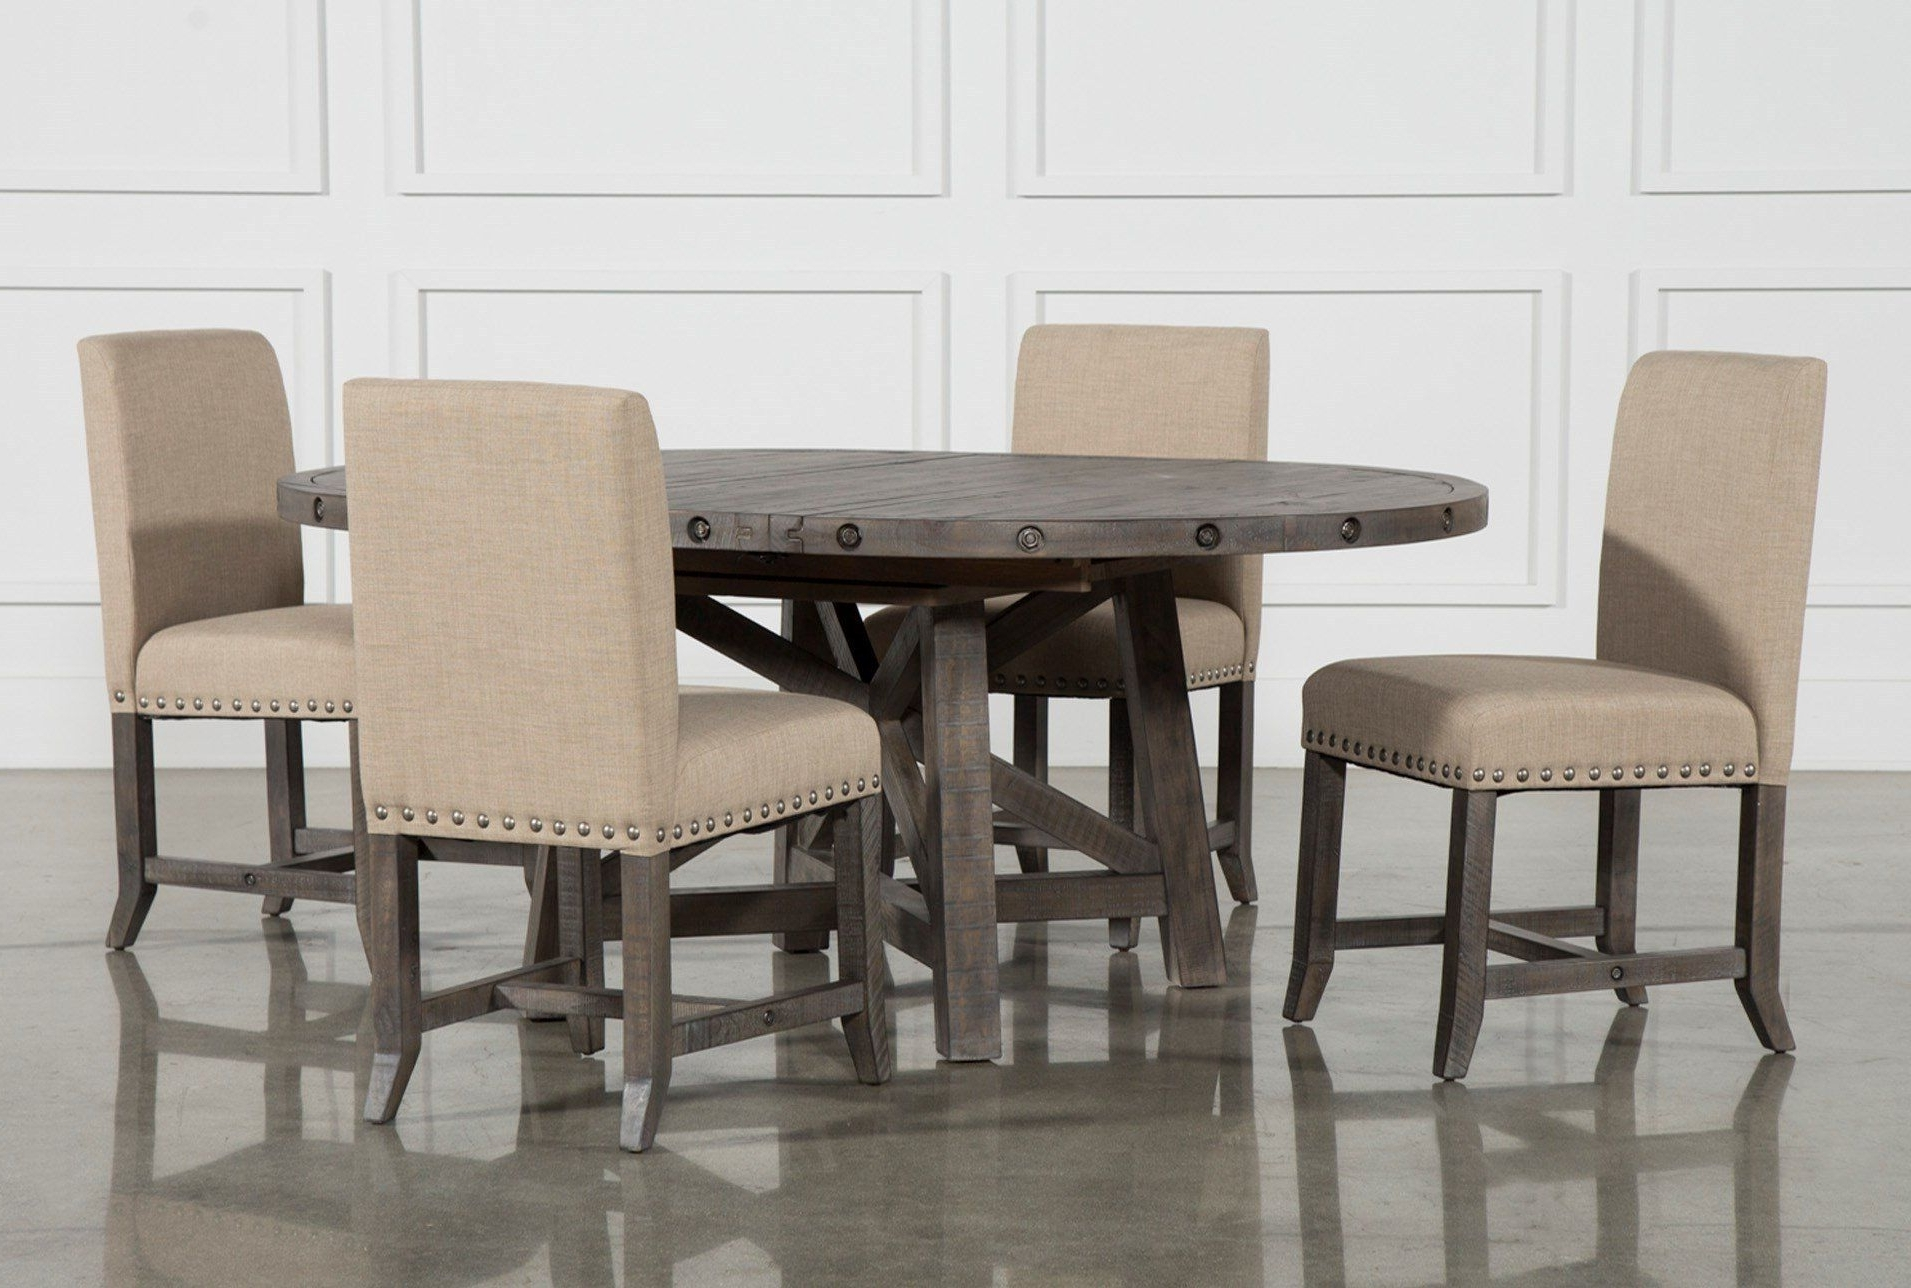 Jaxon Grey 5 Piece Round Extension Dining Set W/upholstered Chairs Regarding Recent Combs 5 Piece Dining Sets With Mindy Slipcovered Chairs (View 4 of 25)